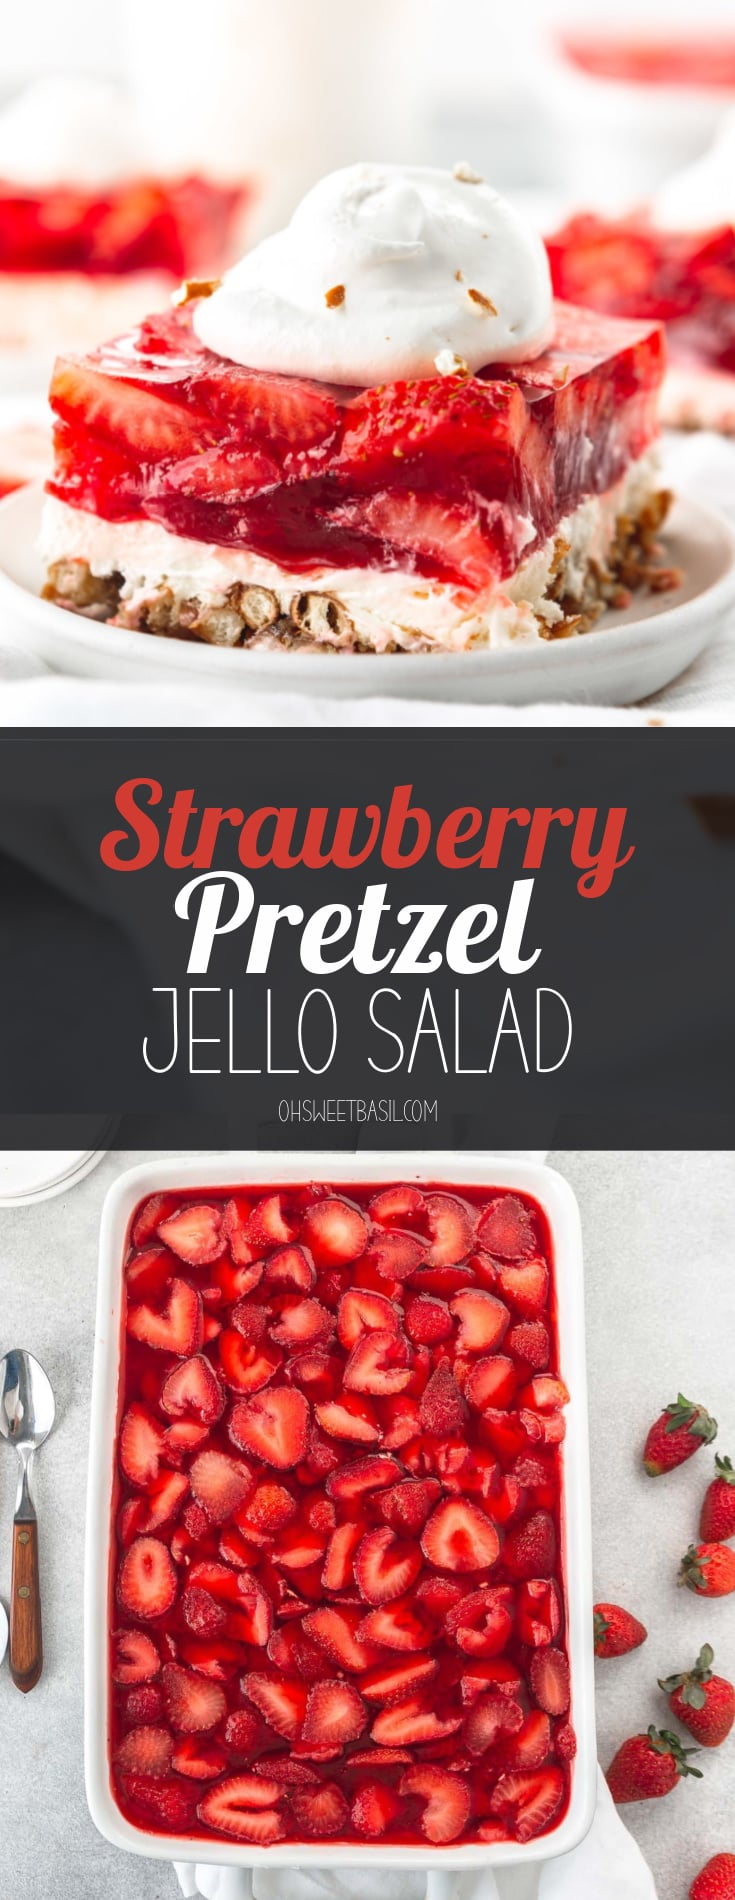 A serving of strawberry pretzel jello salad on a white dessert plate. The salad is layered with pretzel on the bottom, then a white cream layer topped with a layer of strawberry jello packed with sliced strawberries. A dollop of cool whip is on top. Two other servings are in the background.